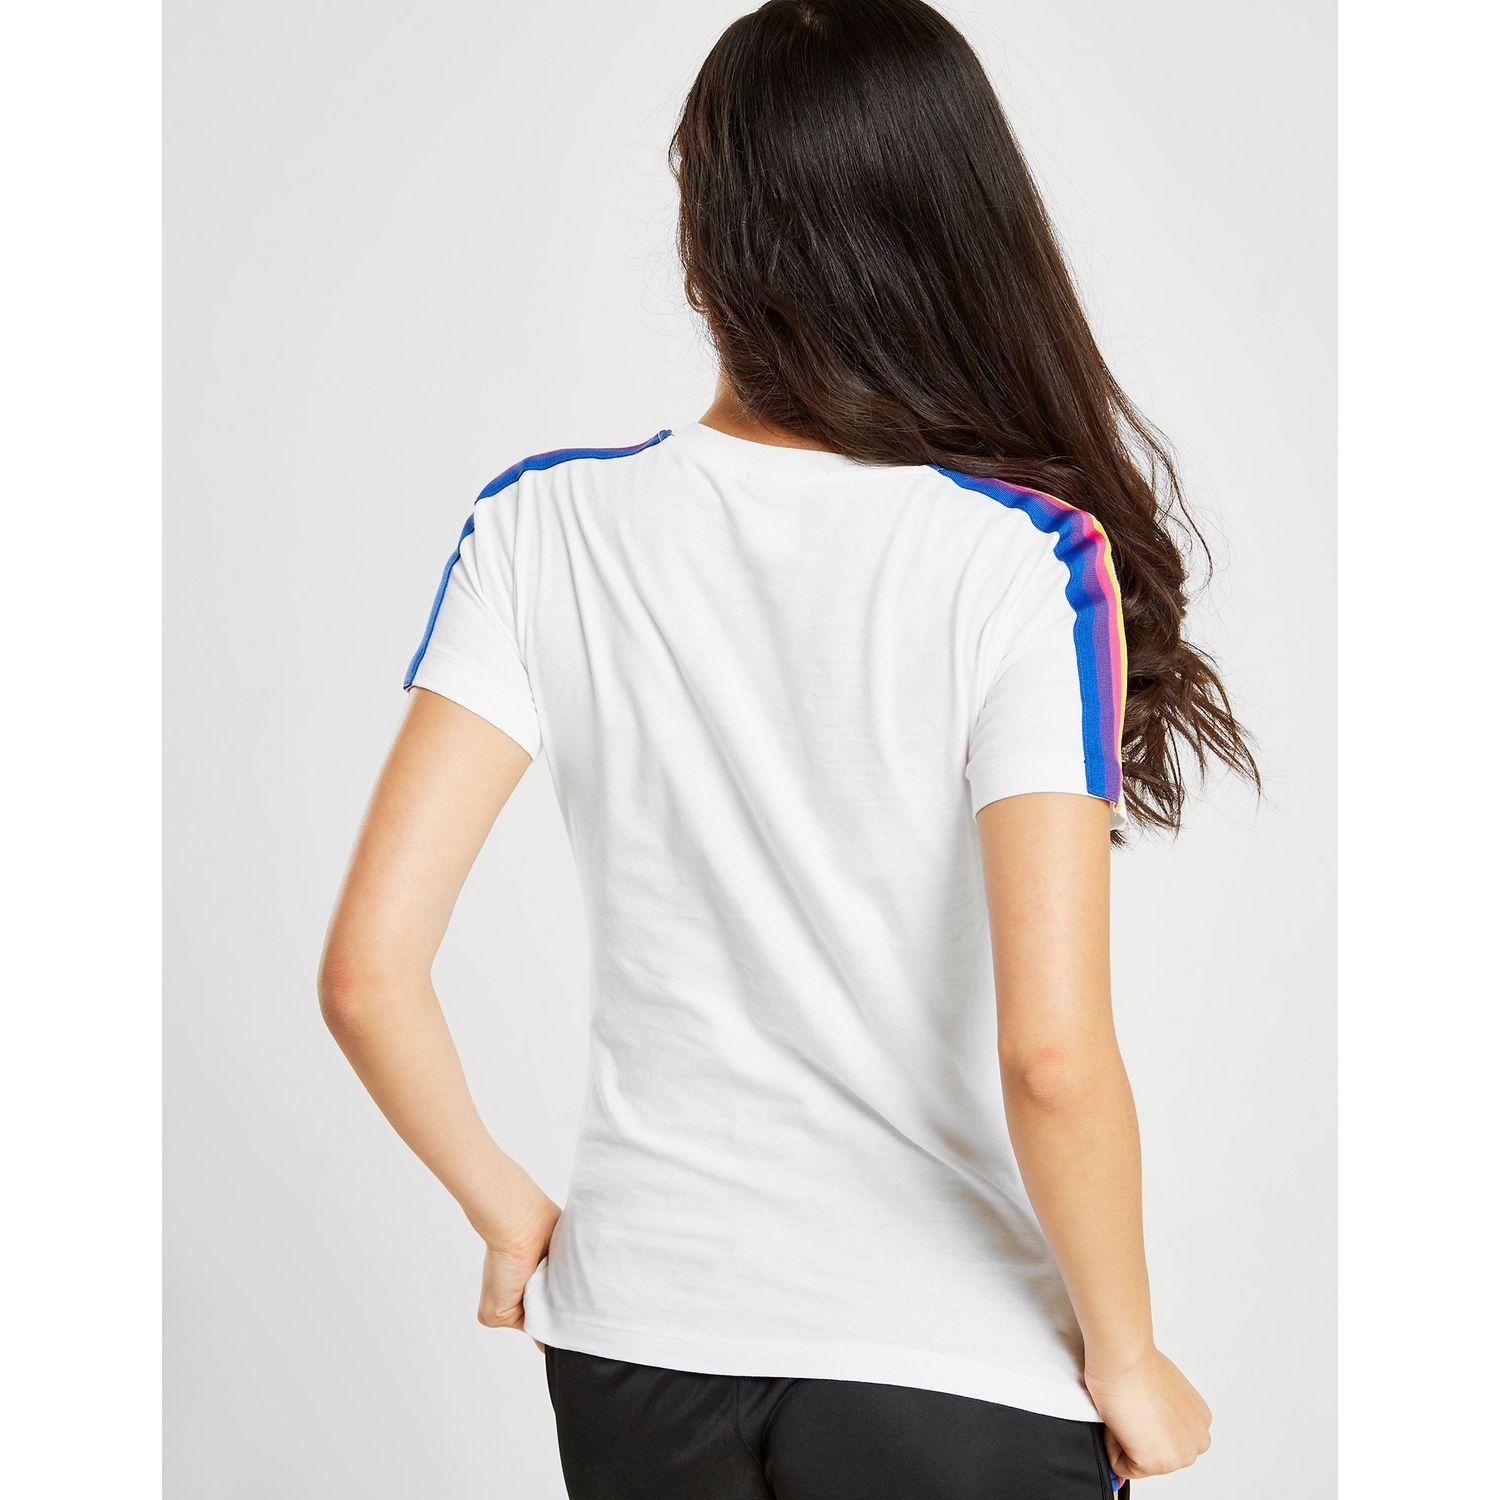 89c044ab9 Champion - White Rainbow Stripe T-shirt - Lyst. View fullscreen